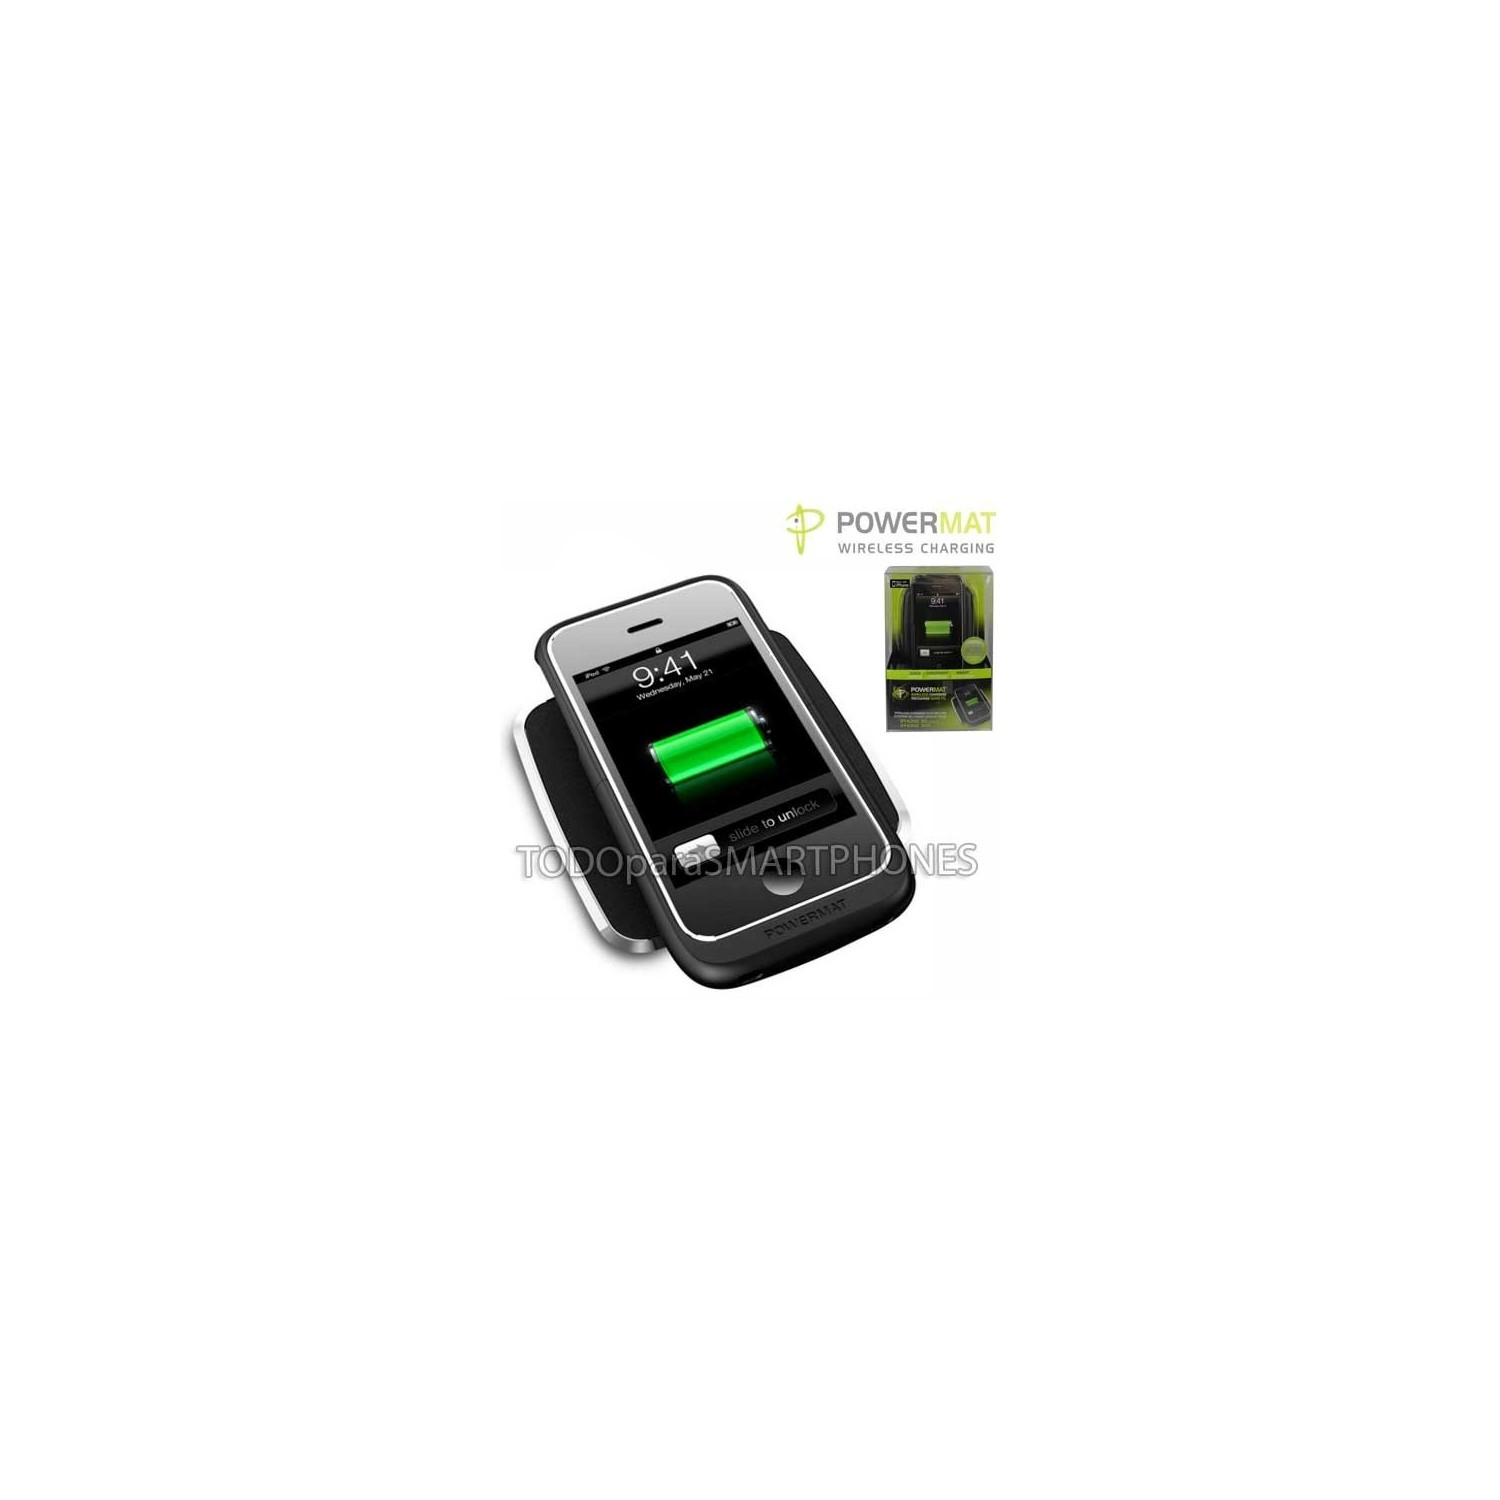 Cargador Powermat iPhone 3G/3GS